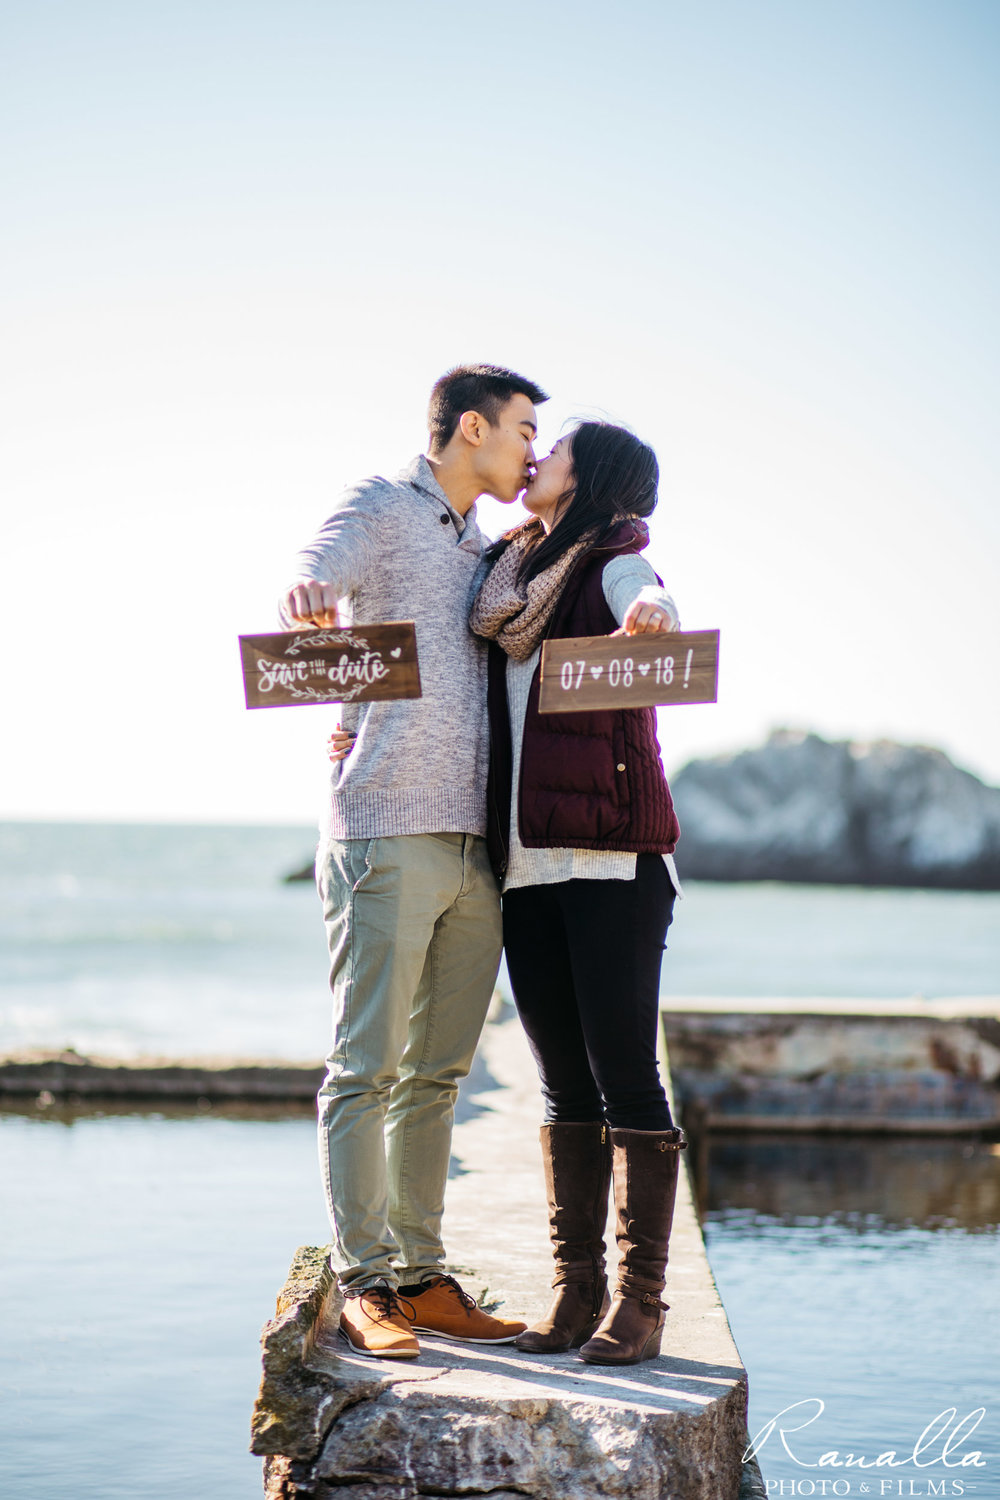 San Francisco Engagement Photography- Save the Date Sign- Lands End Wedding Photos- Ranalla Photo & Films